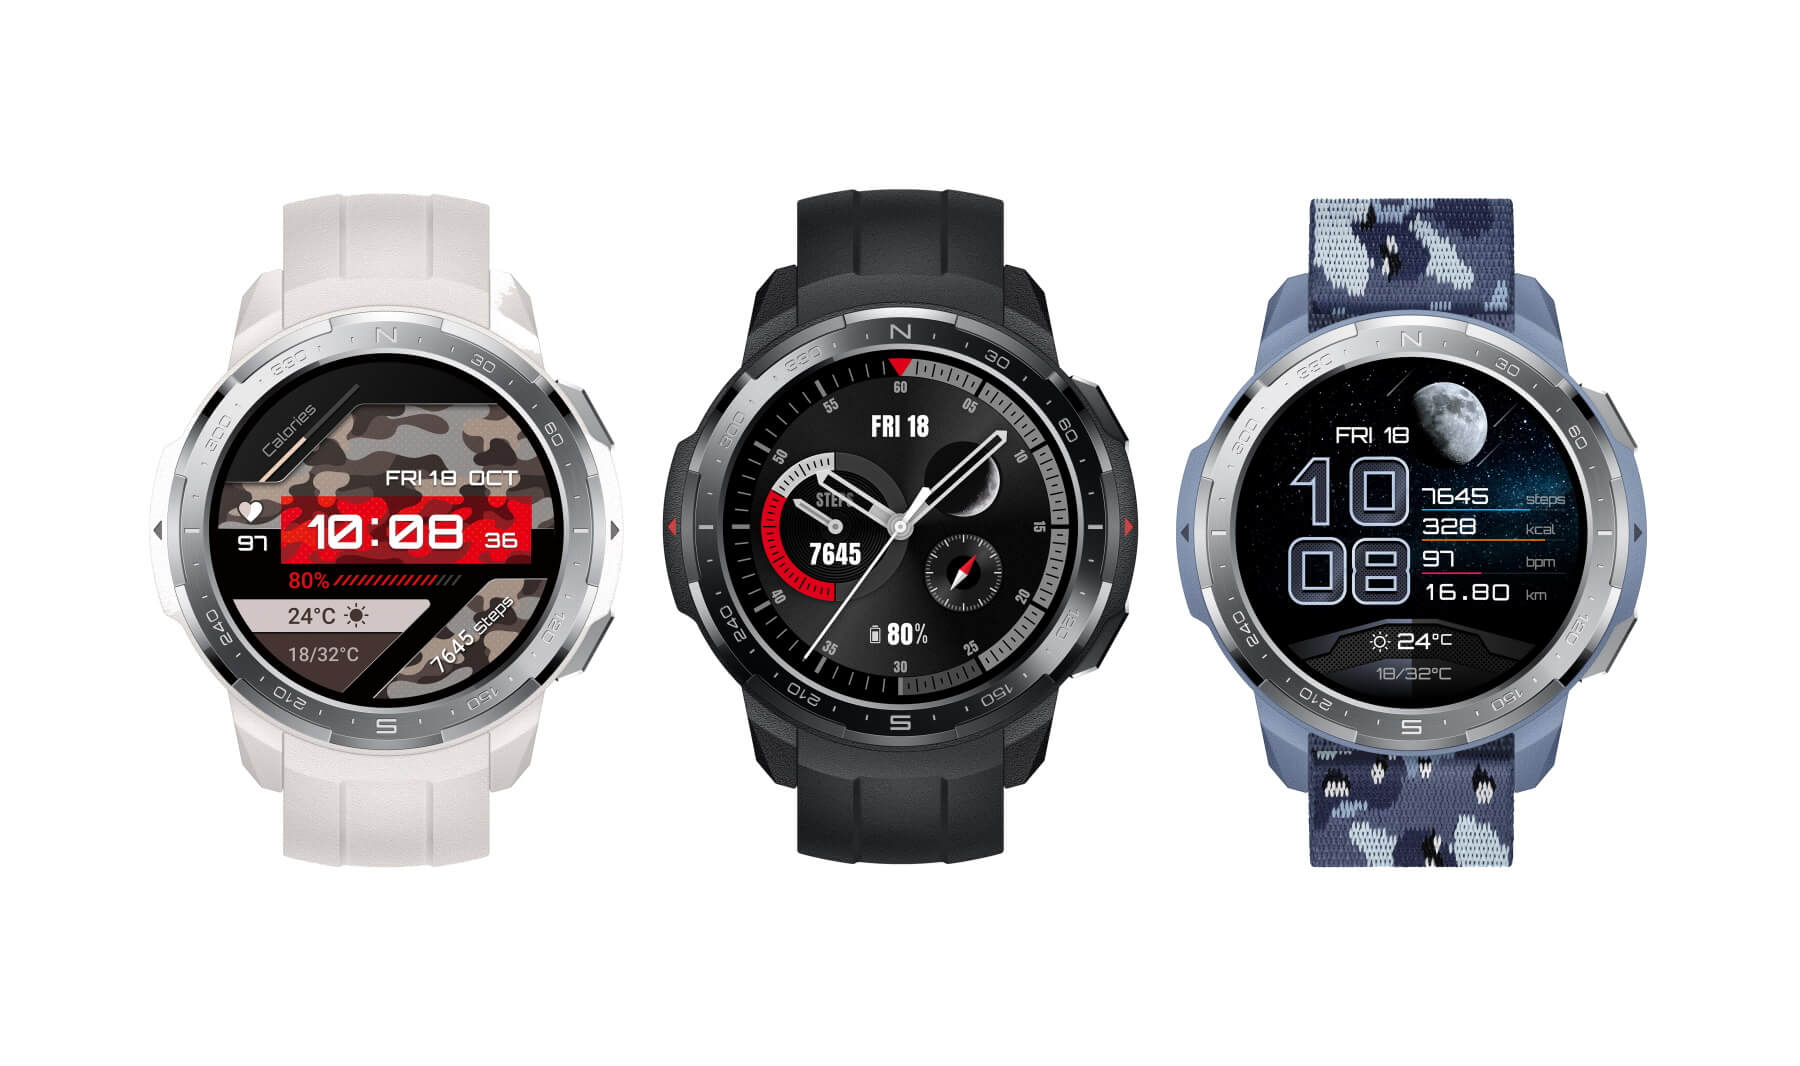 Honor says its new rugged smartwatch has a 25-day battery life